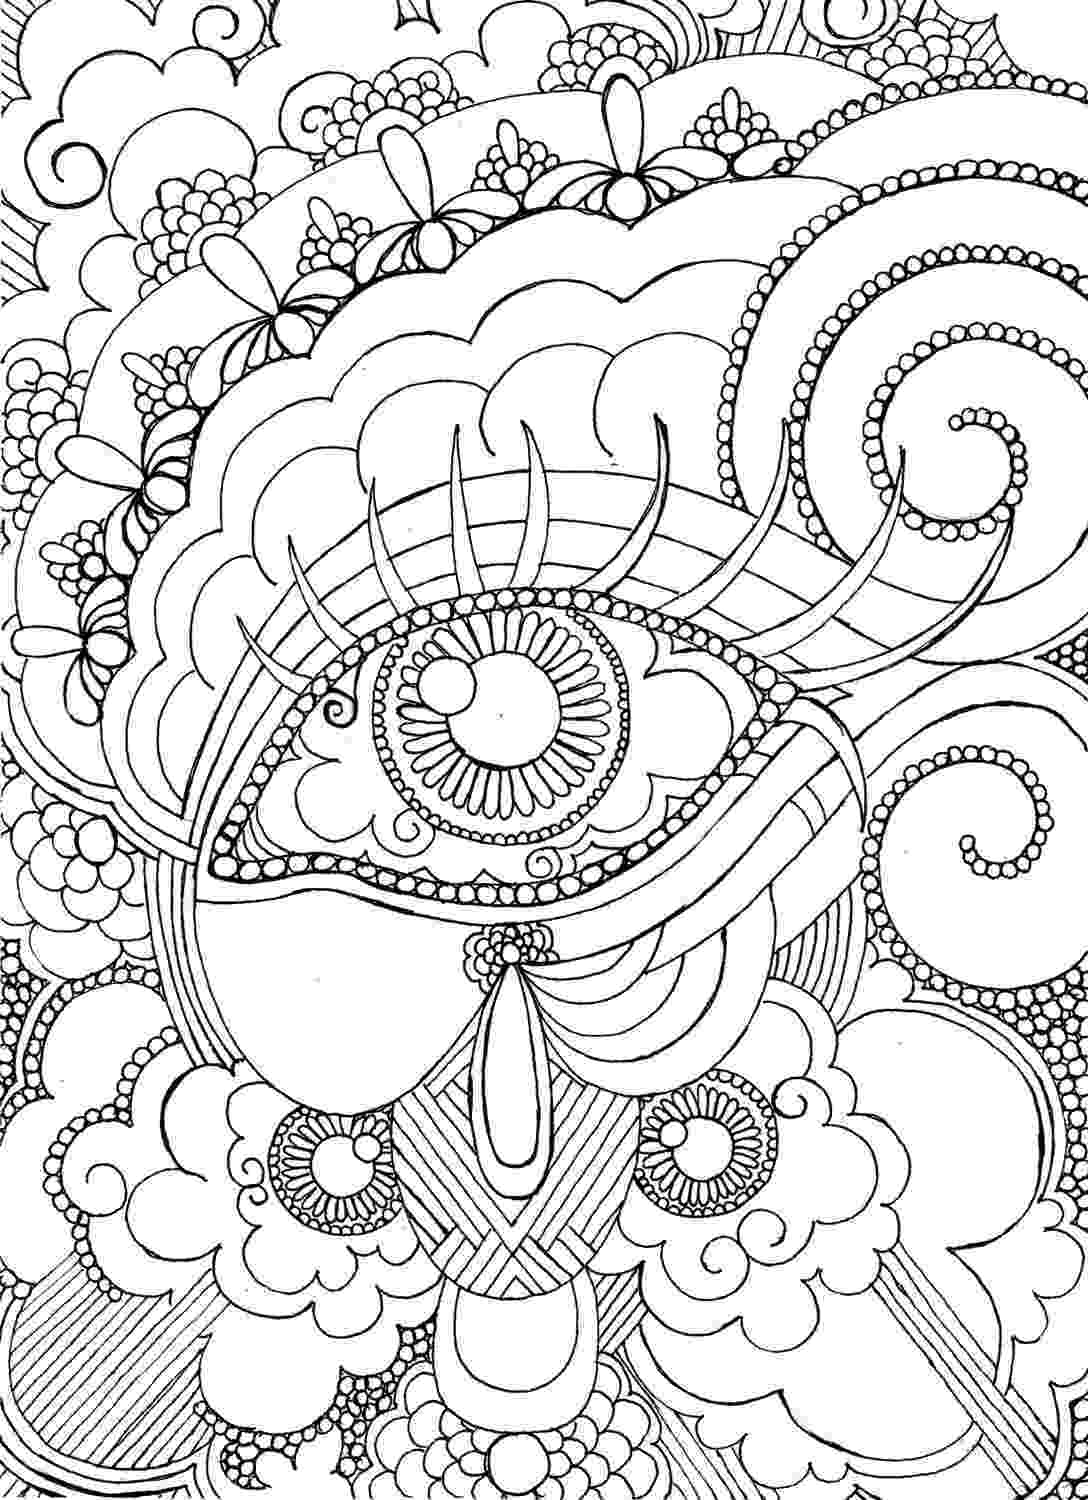 colouring pages adults whatever coloring page coloring book pages printable adult adults pages colouring